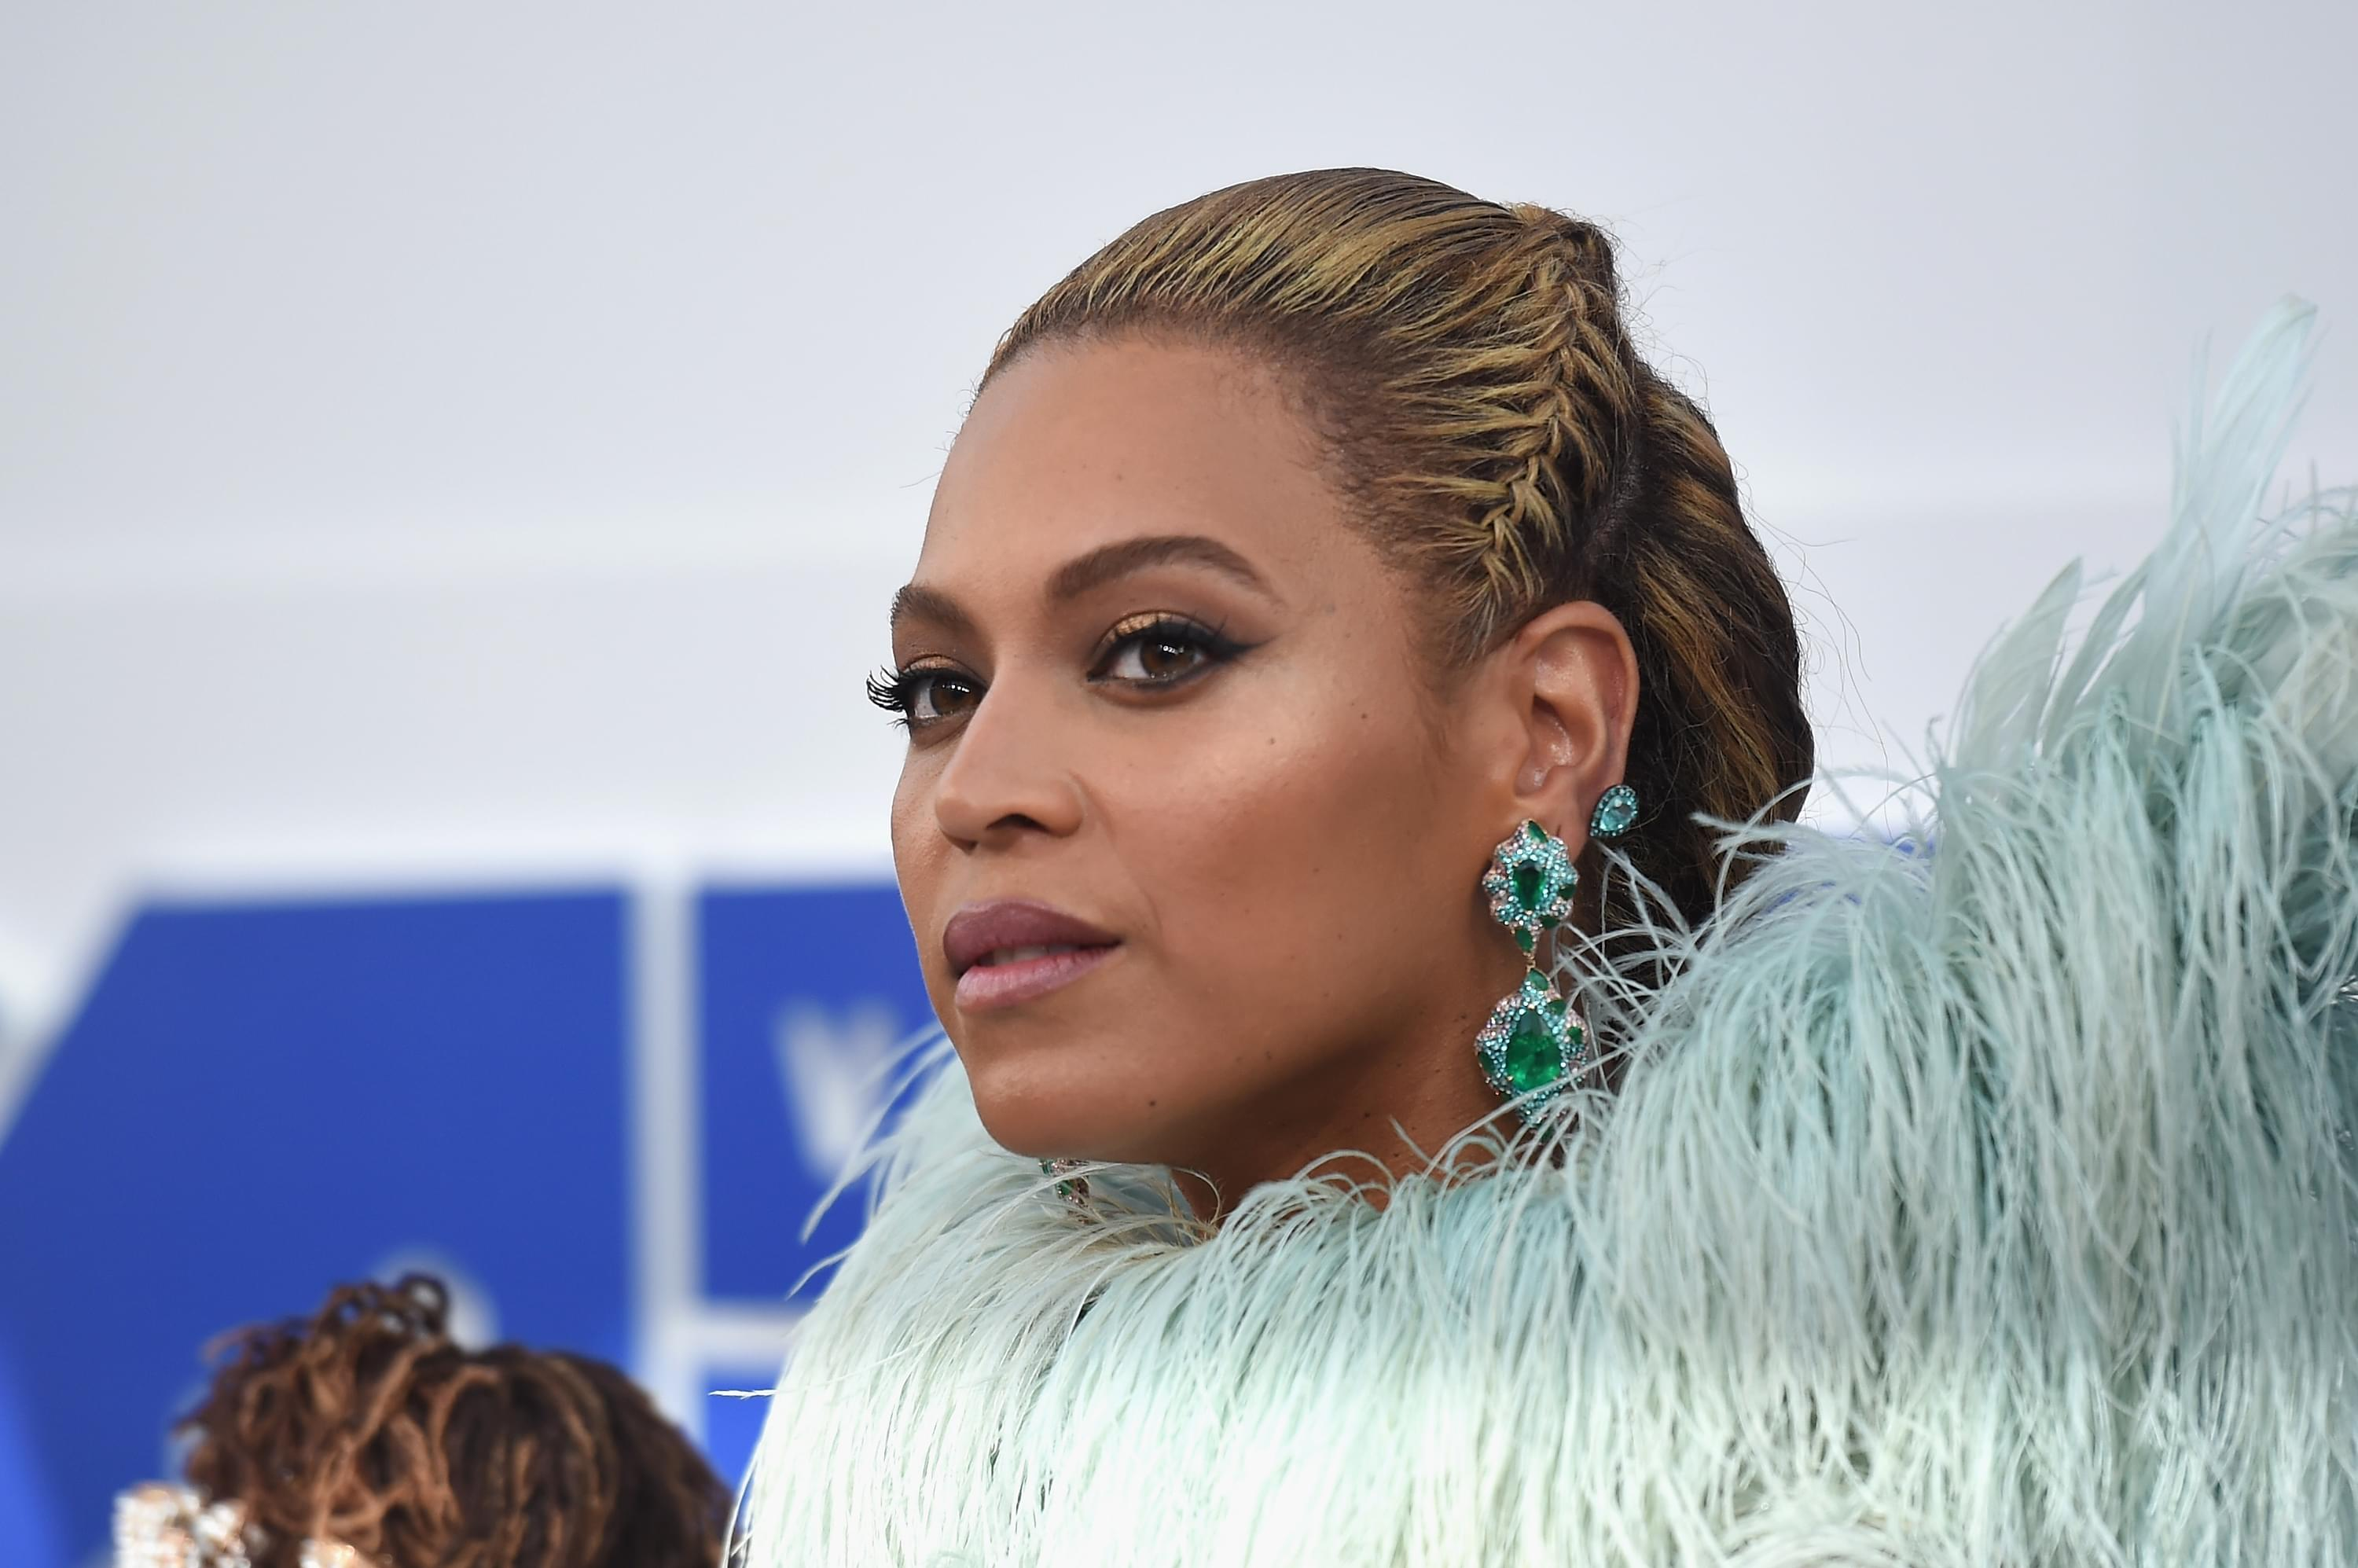 Beyonce's Response To George Floyd's Death [VIDEO]